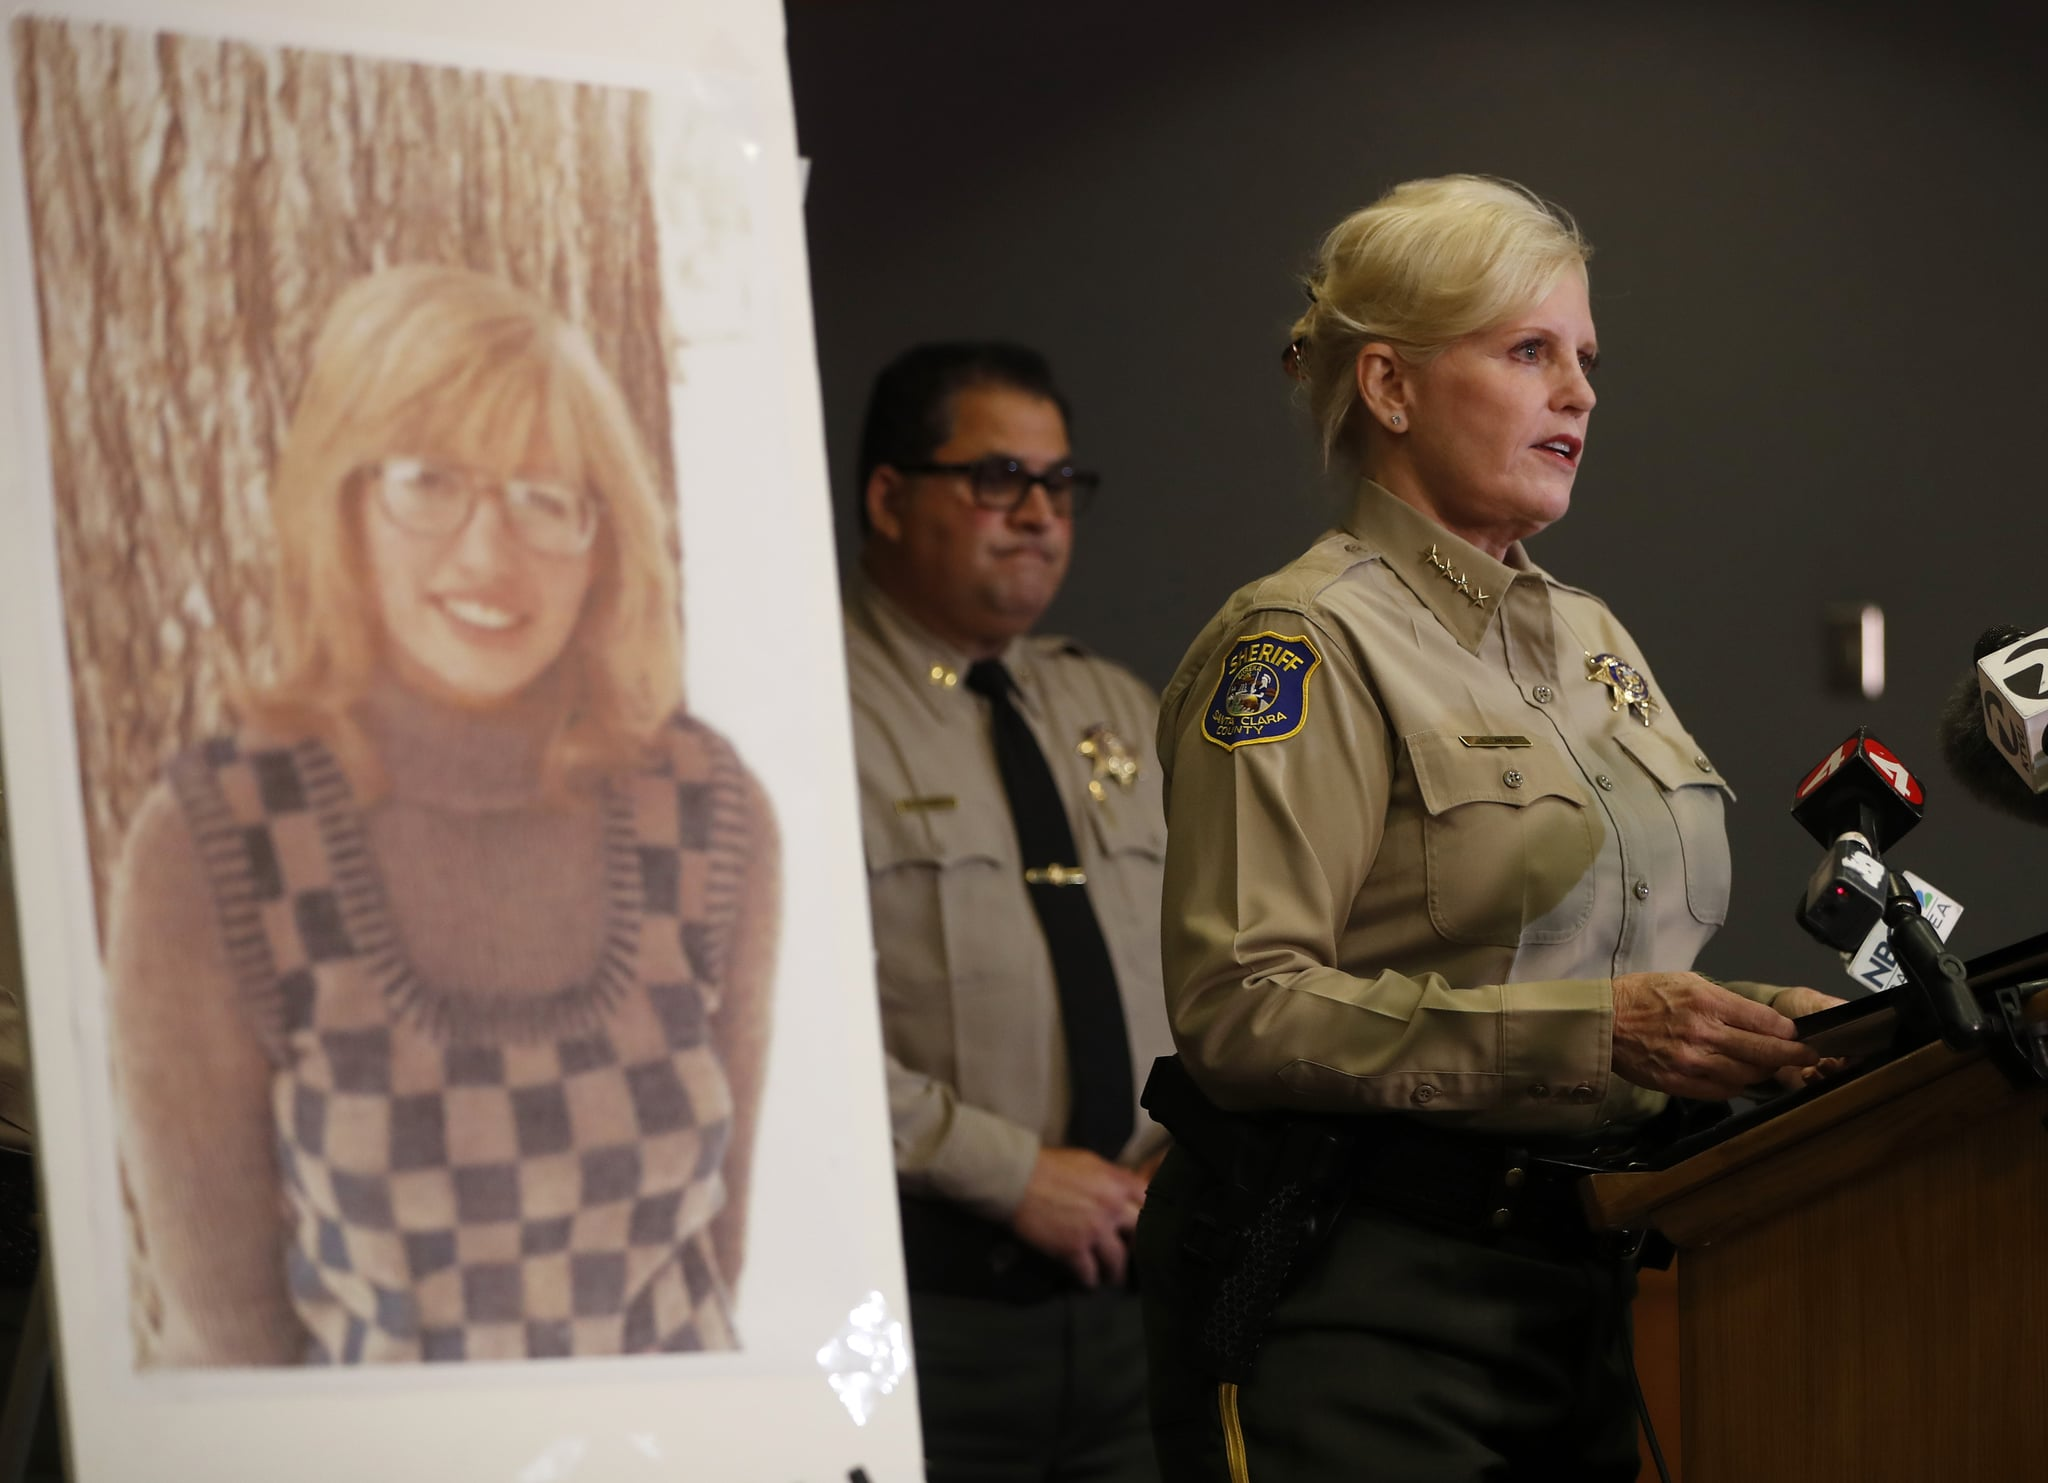 SAN JOSE, CA - JUNE 28: Santa Clara County Sheriff Laurie Smith speaks to the media about the 1974 killing of Arlis Perry at the Sheriff's office in San Jose, Calif., on Thursday, June 28, 2018. (Nhat V. Meyer/Bay Area News Group via Getty Images)